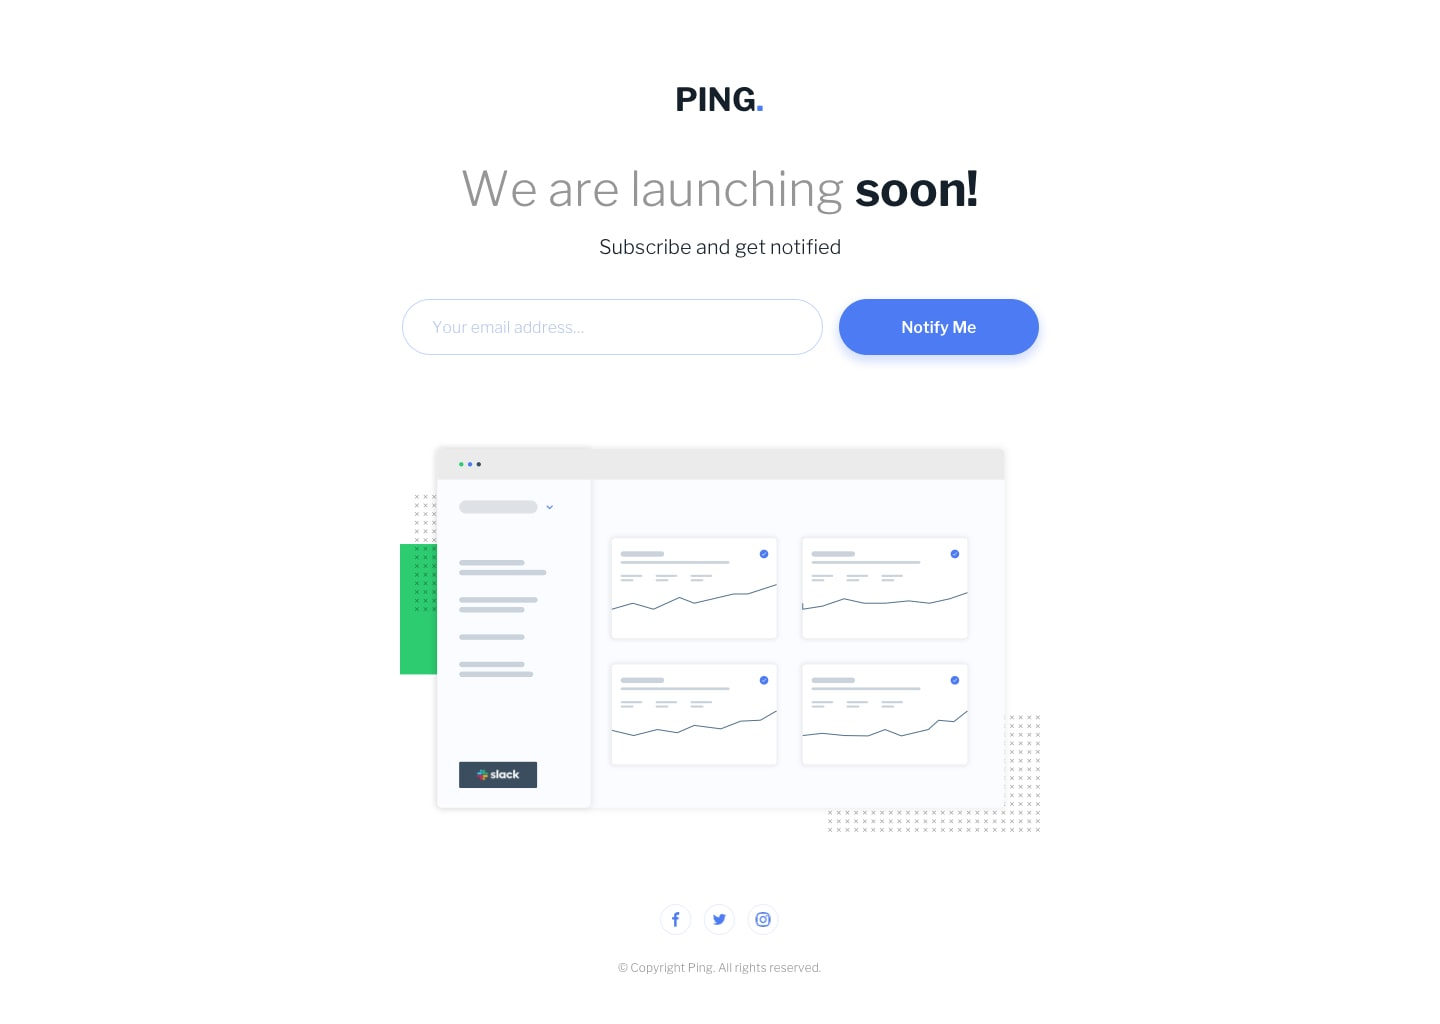 Design preview for Ping single column coming soon page coding challenge